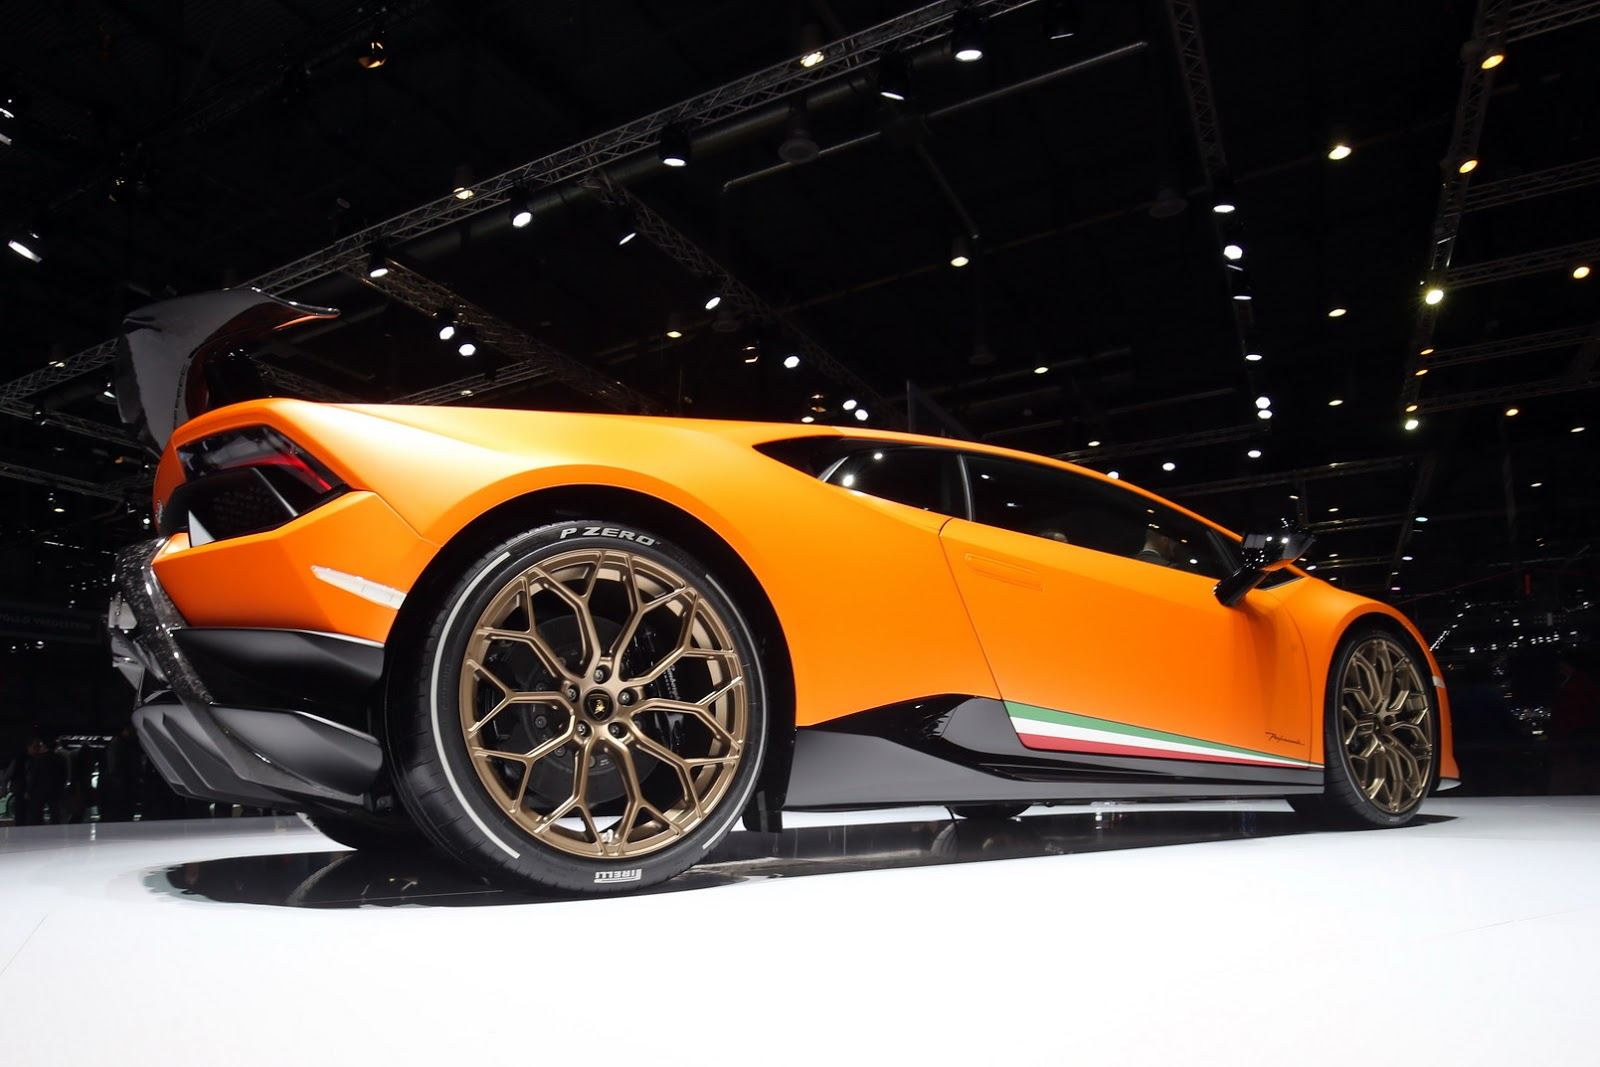 lamborghini shows huracan performante telemetry data to confirm 39 ring time carscoops. Black Bedroom Furniture Sets. Home Design Ideas